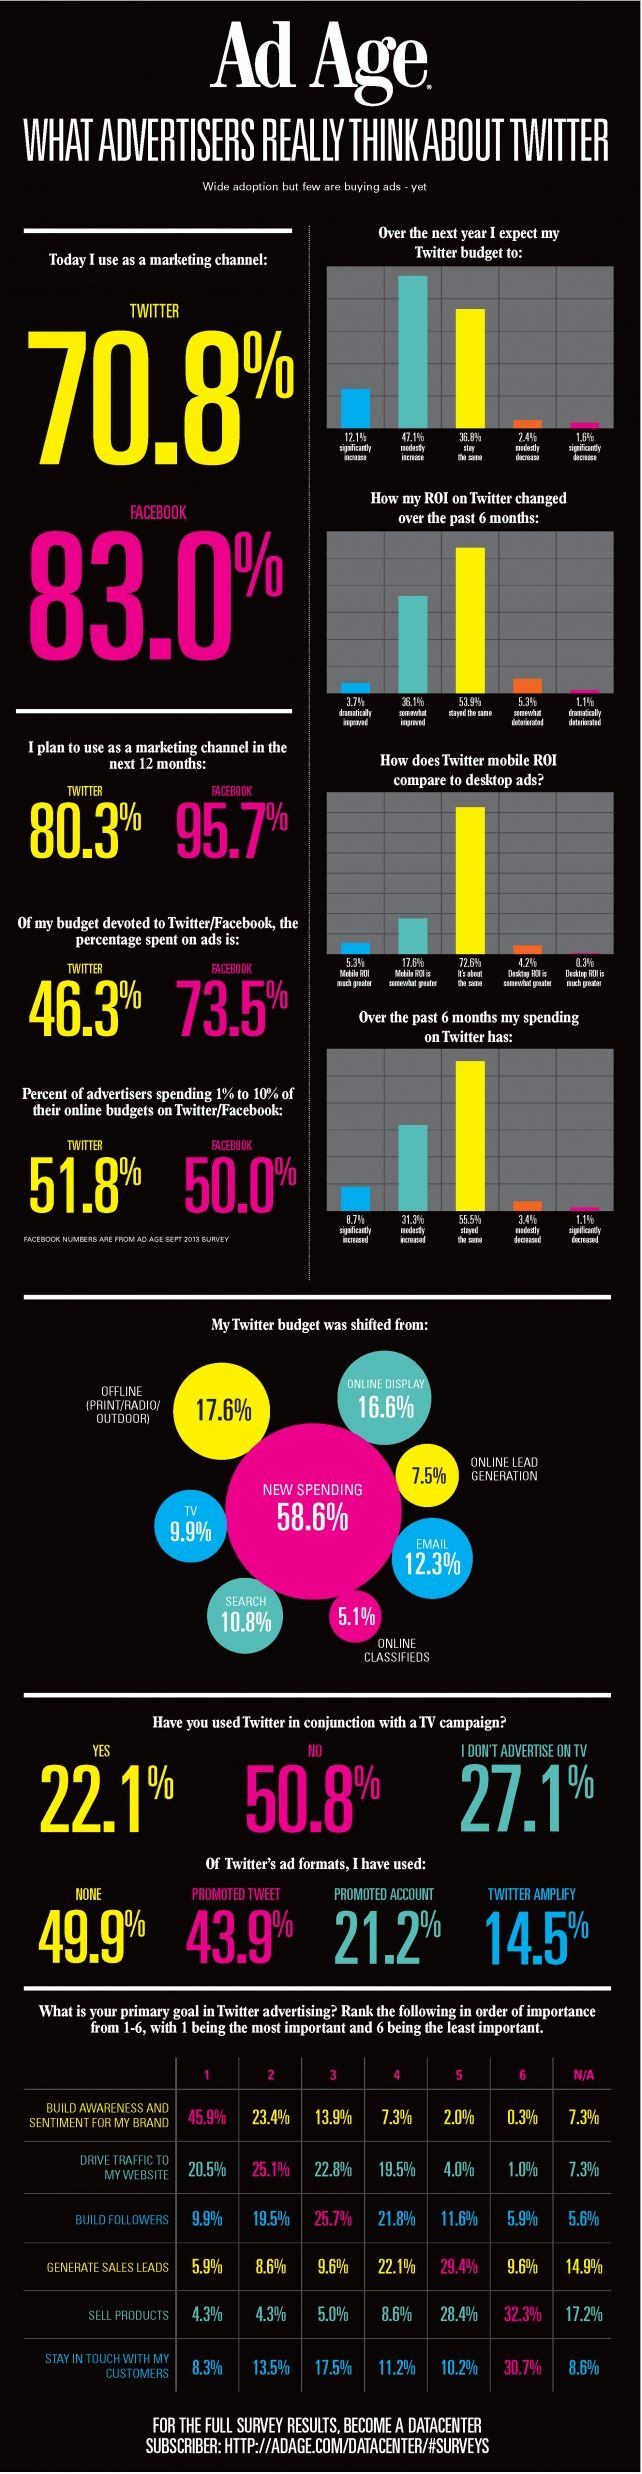 An Ad Age survey shows what advertisers think about Twitter.  The results indicate marketers are using Twitter like they used Facebook in 2012.